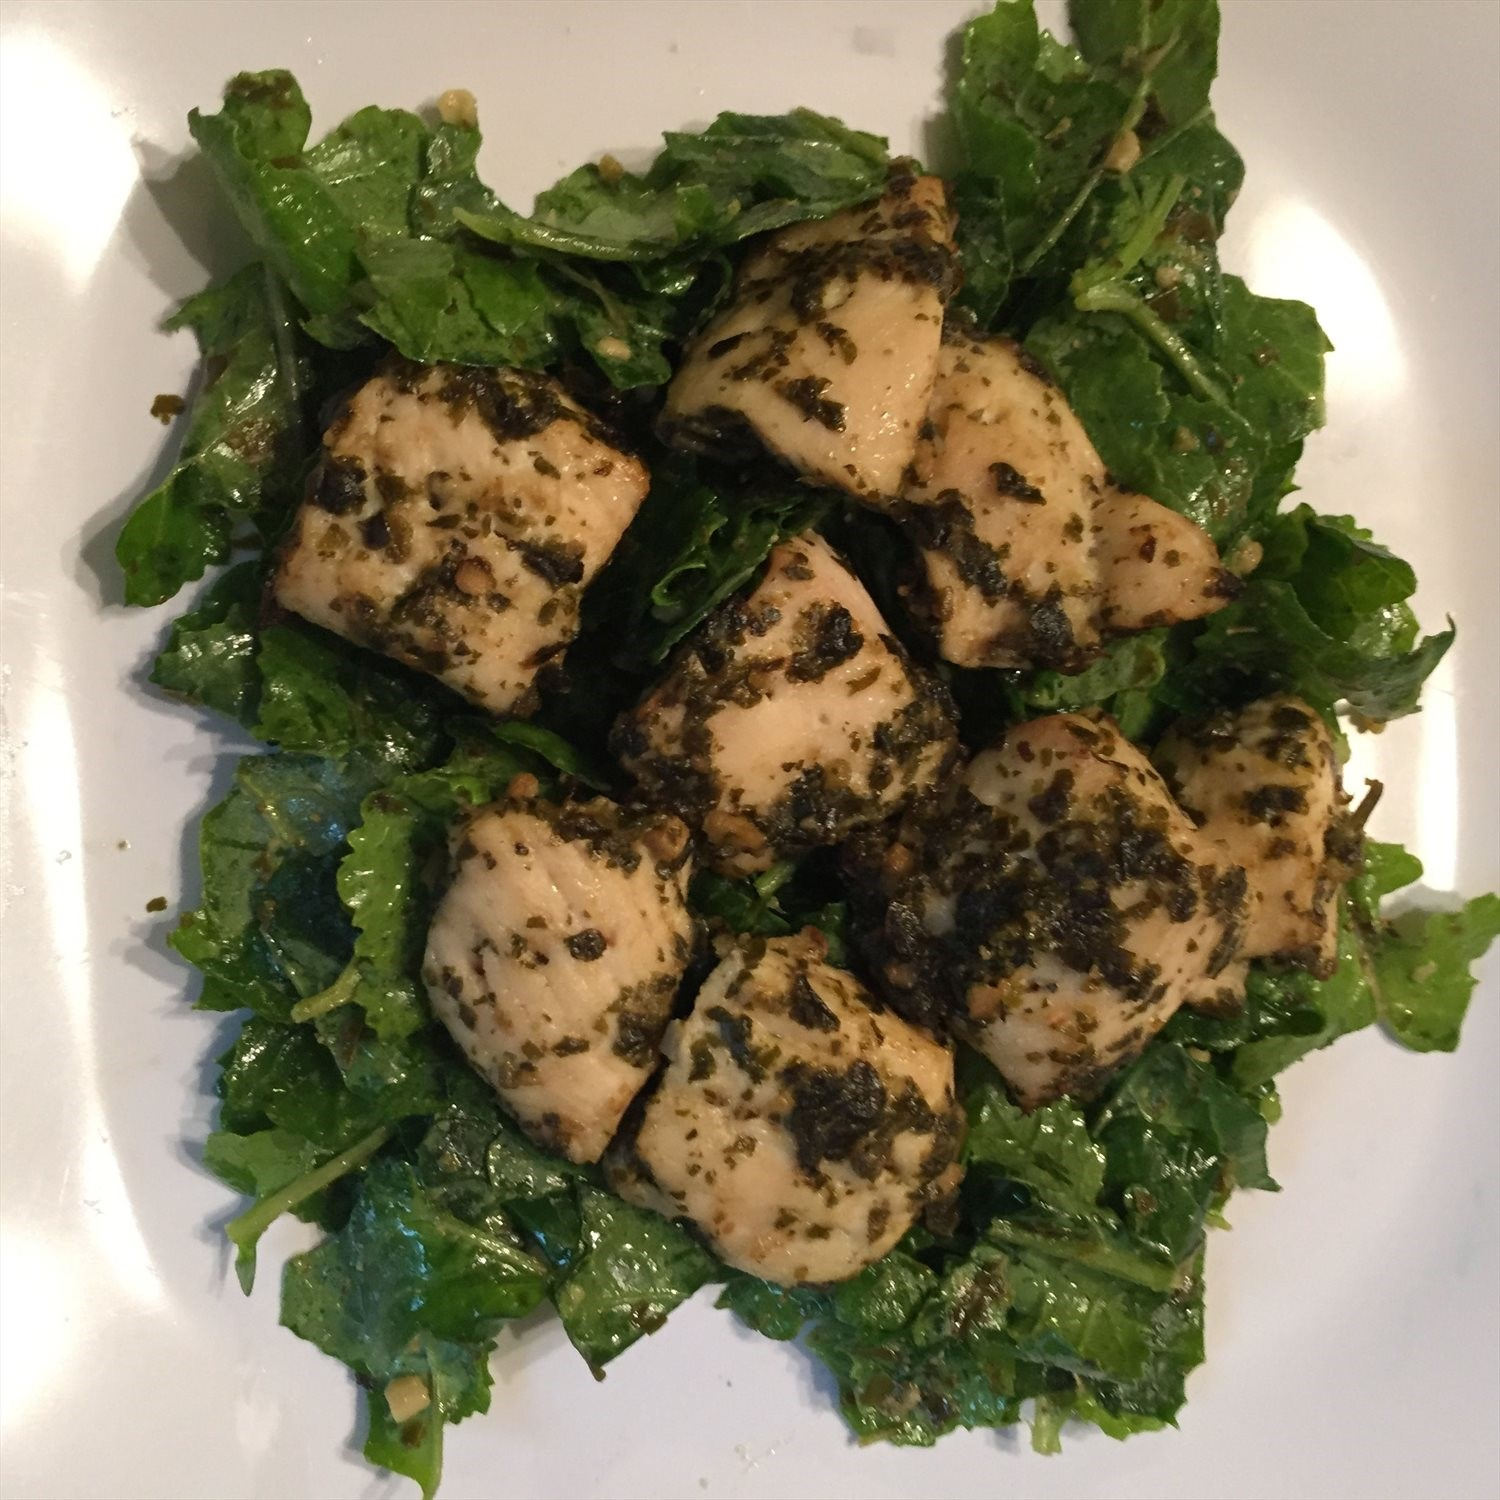 Baked Pesto Chicken and Kale